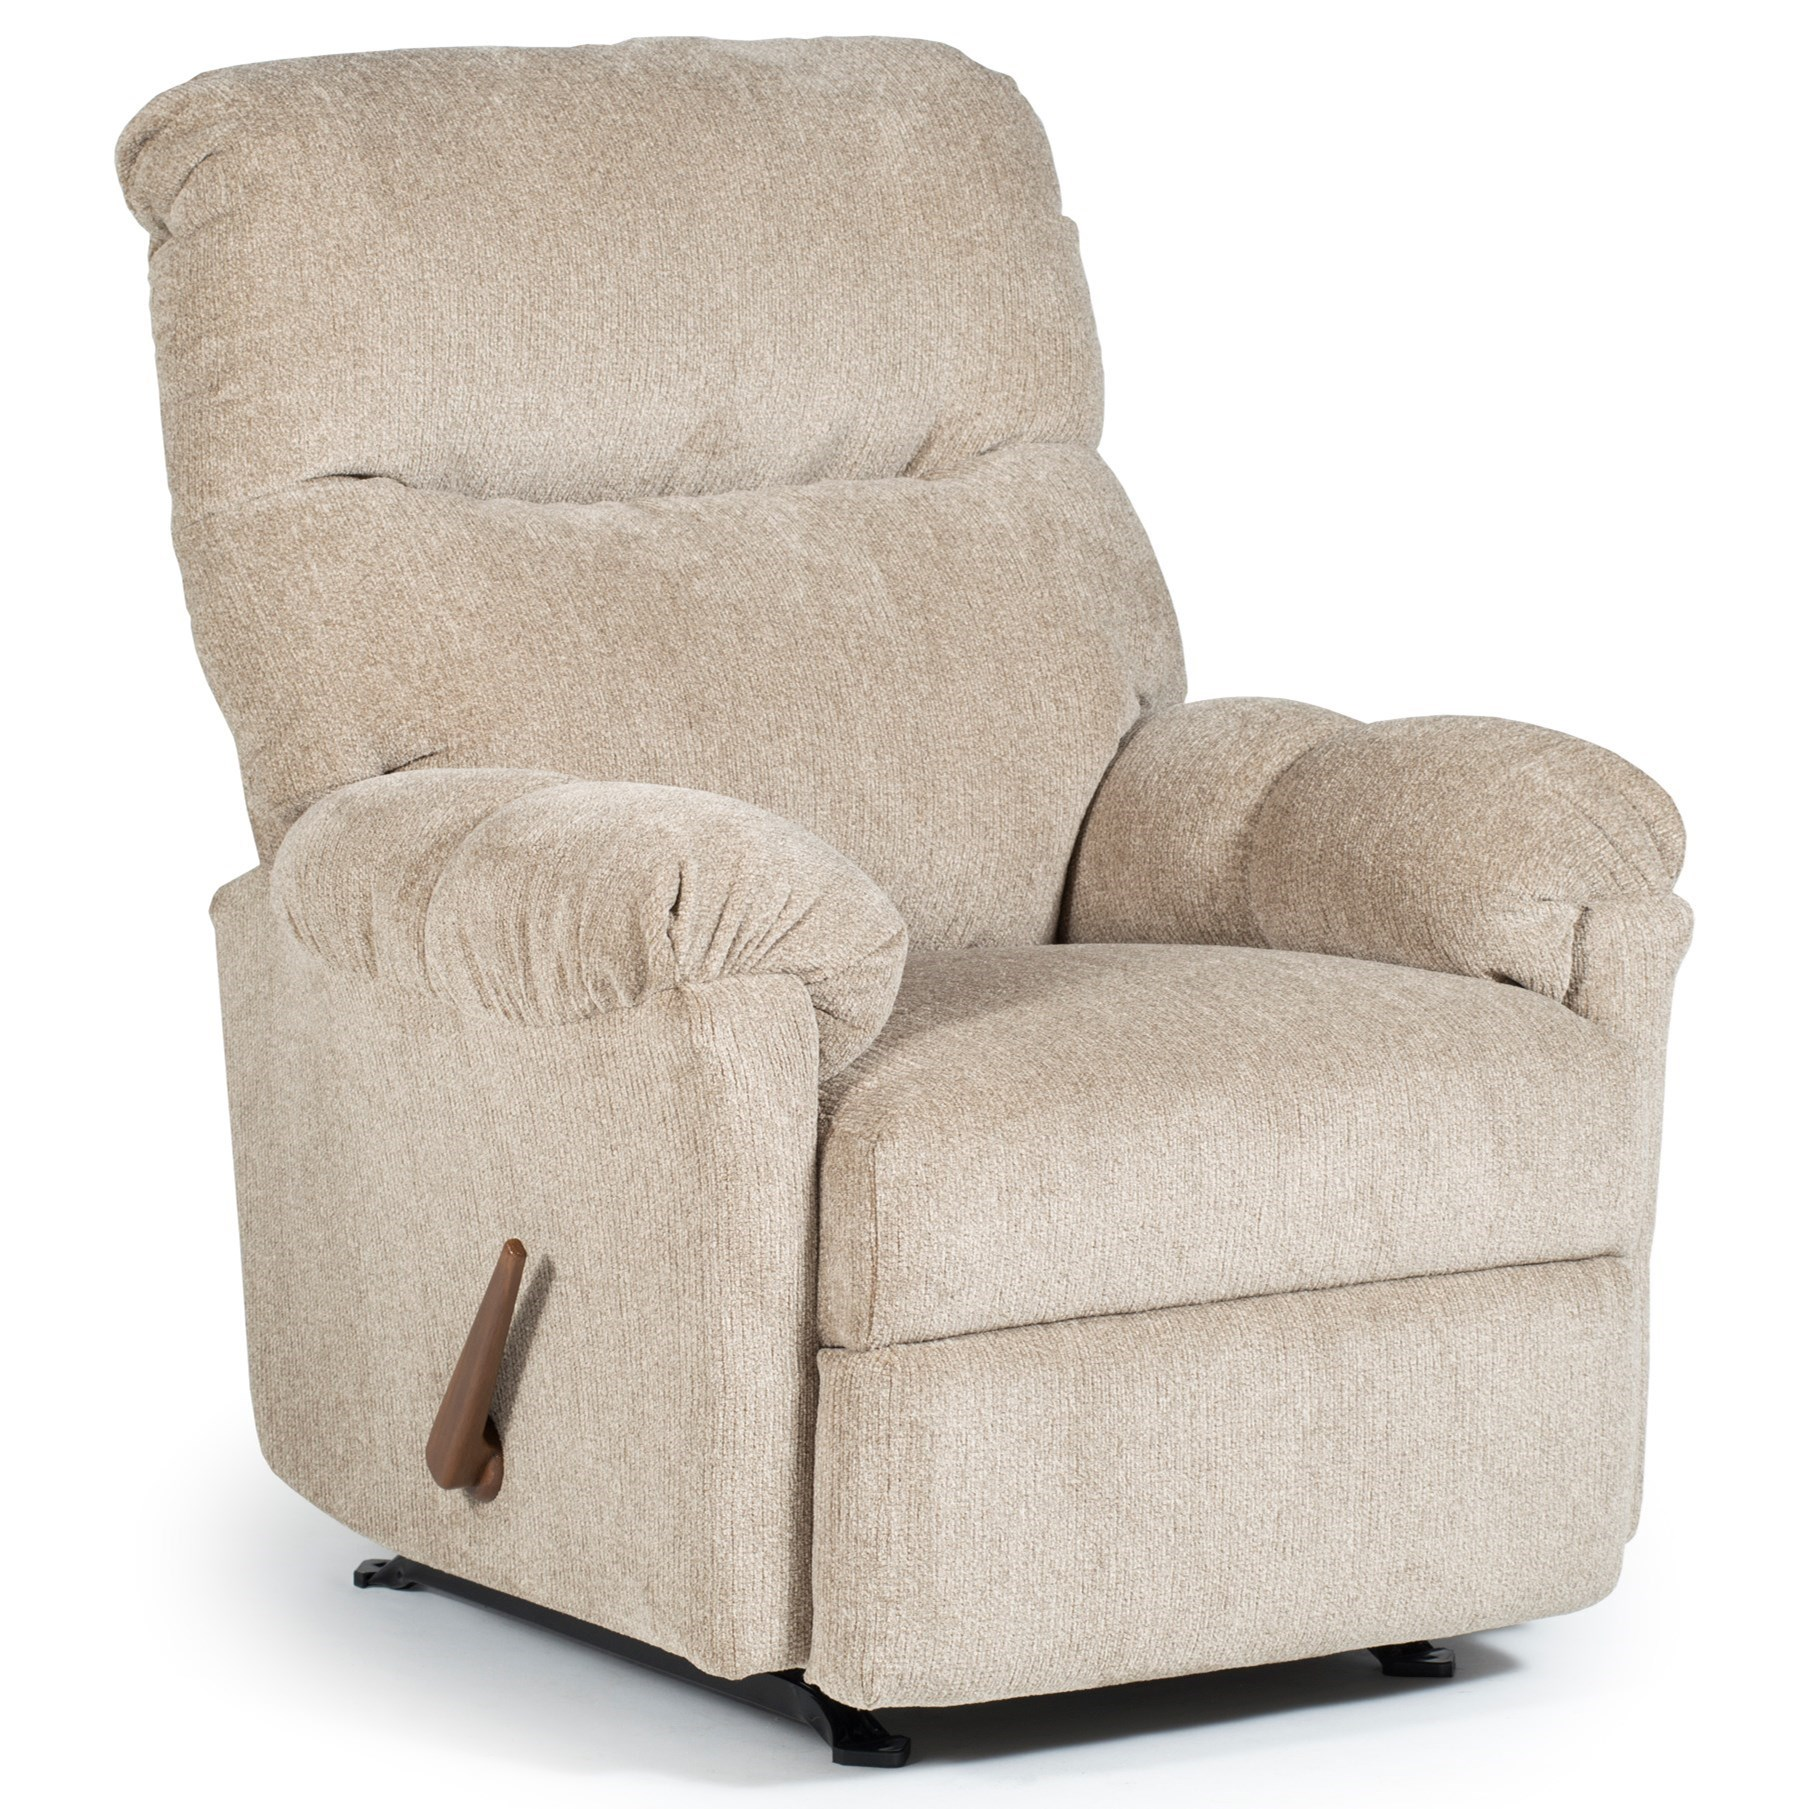 Best Home Furnishings Recliners Medium Balmore Wall